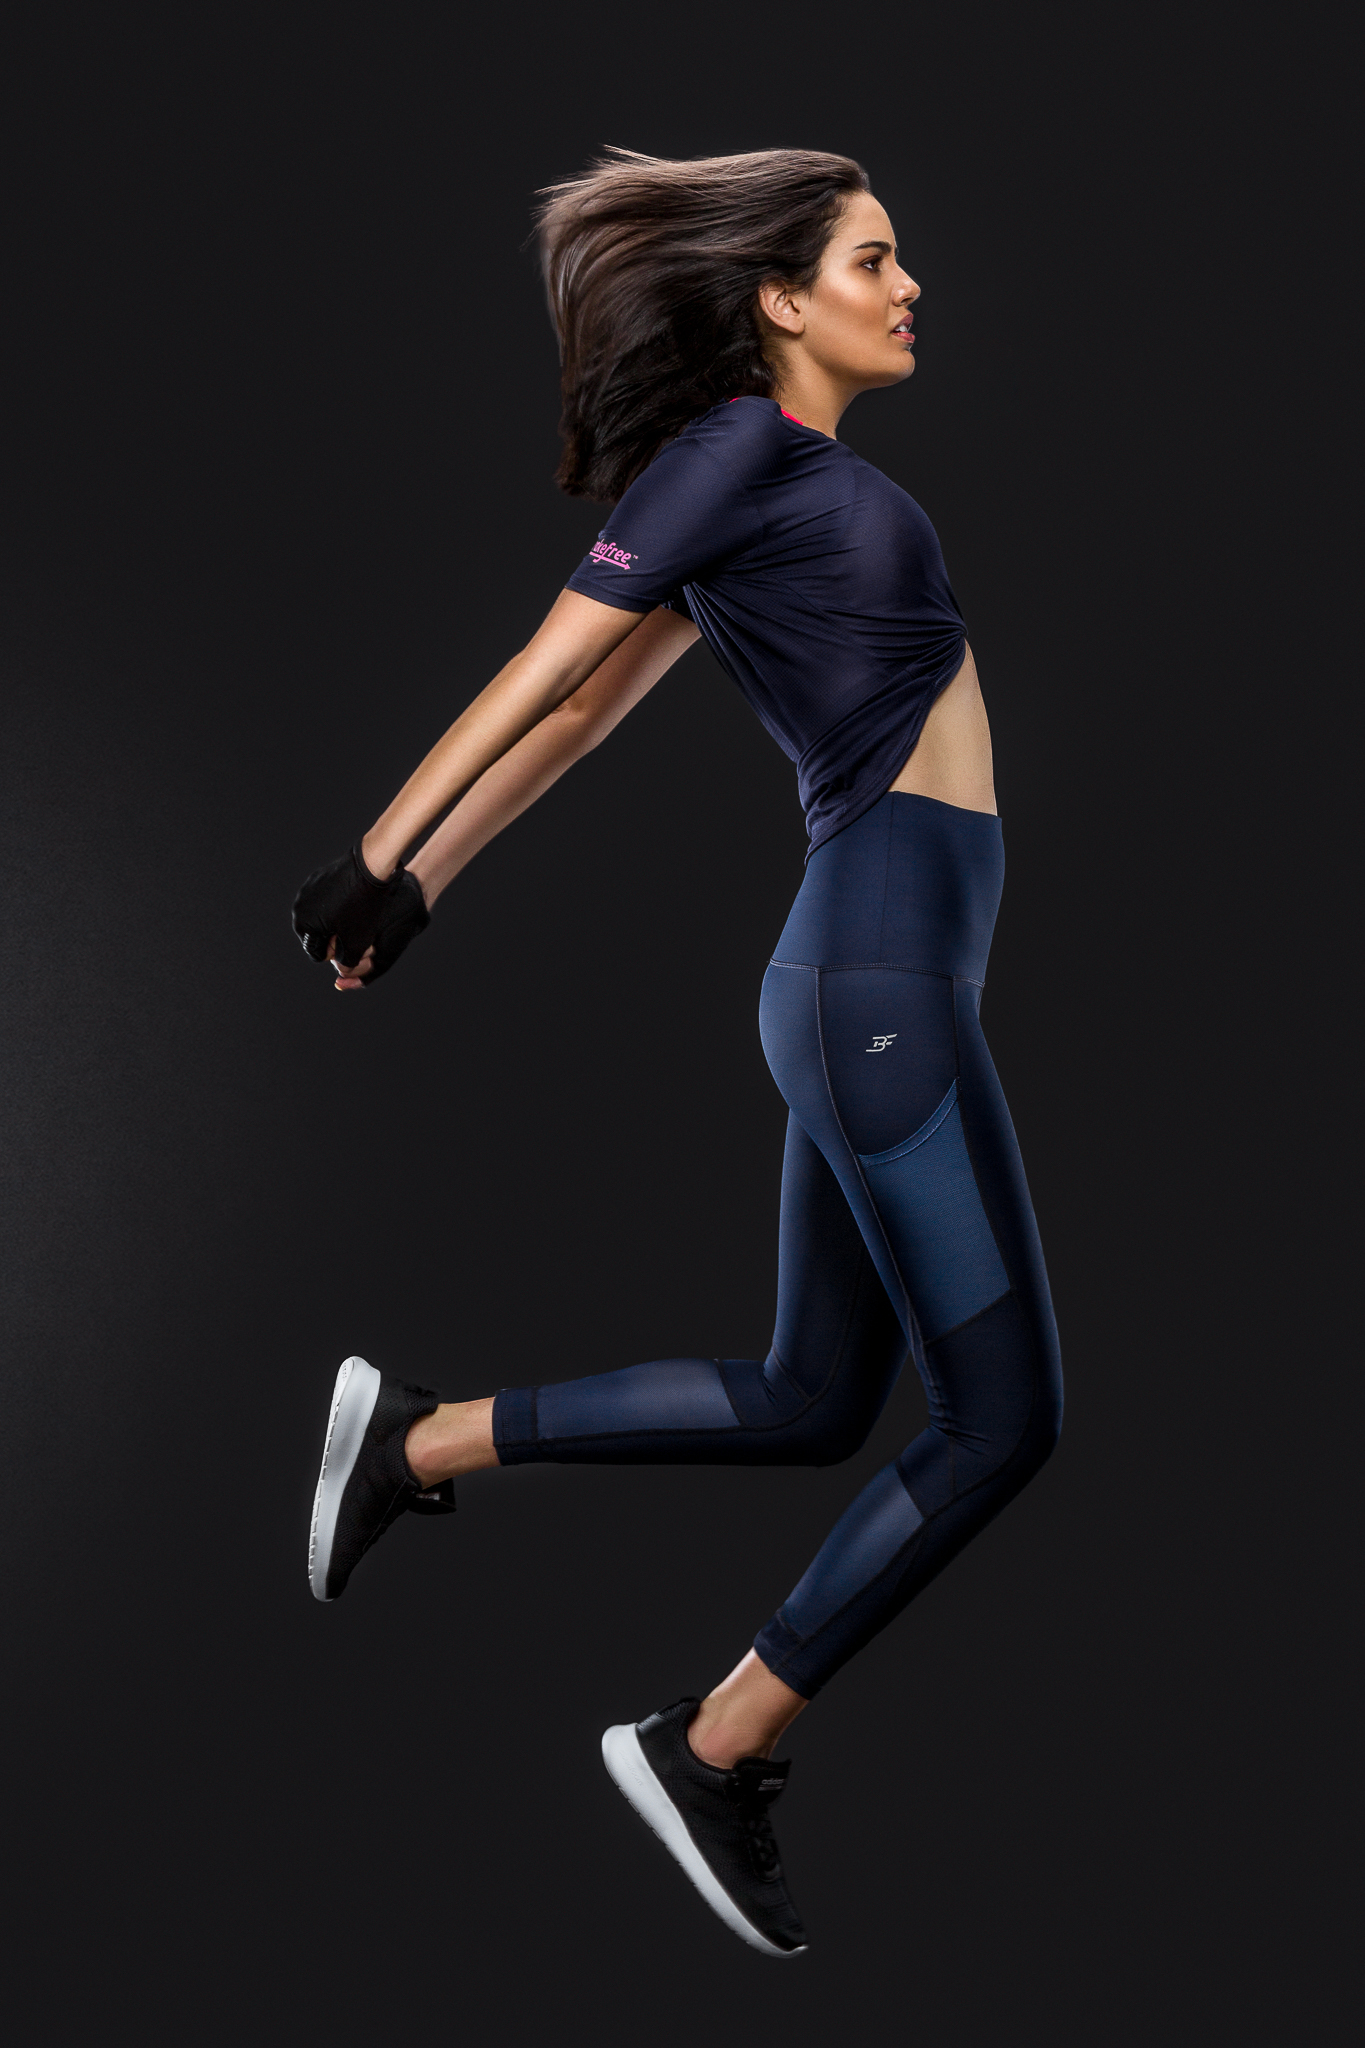 Brakefree - HIGH IMPACT ACTIVE WEAR CAMPAIG